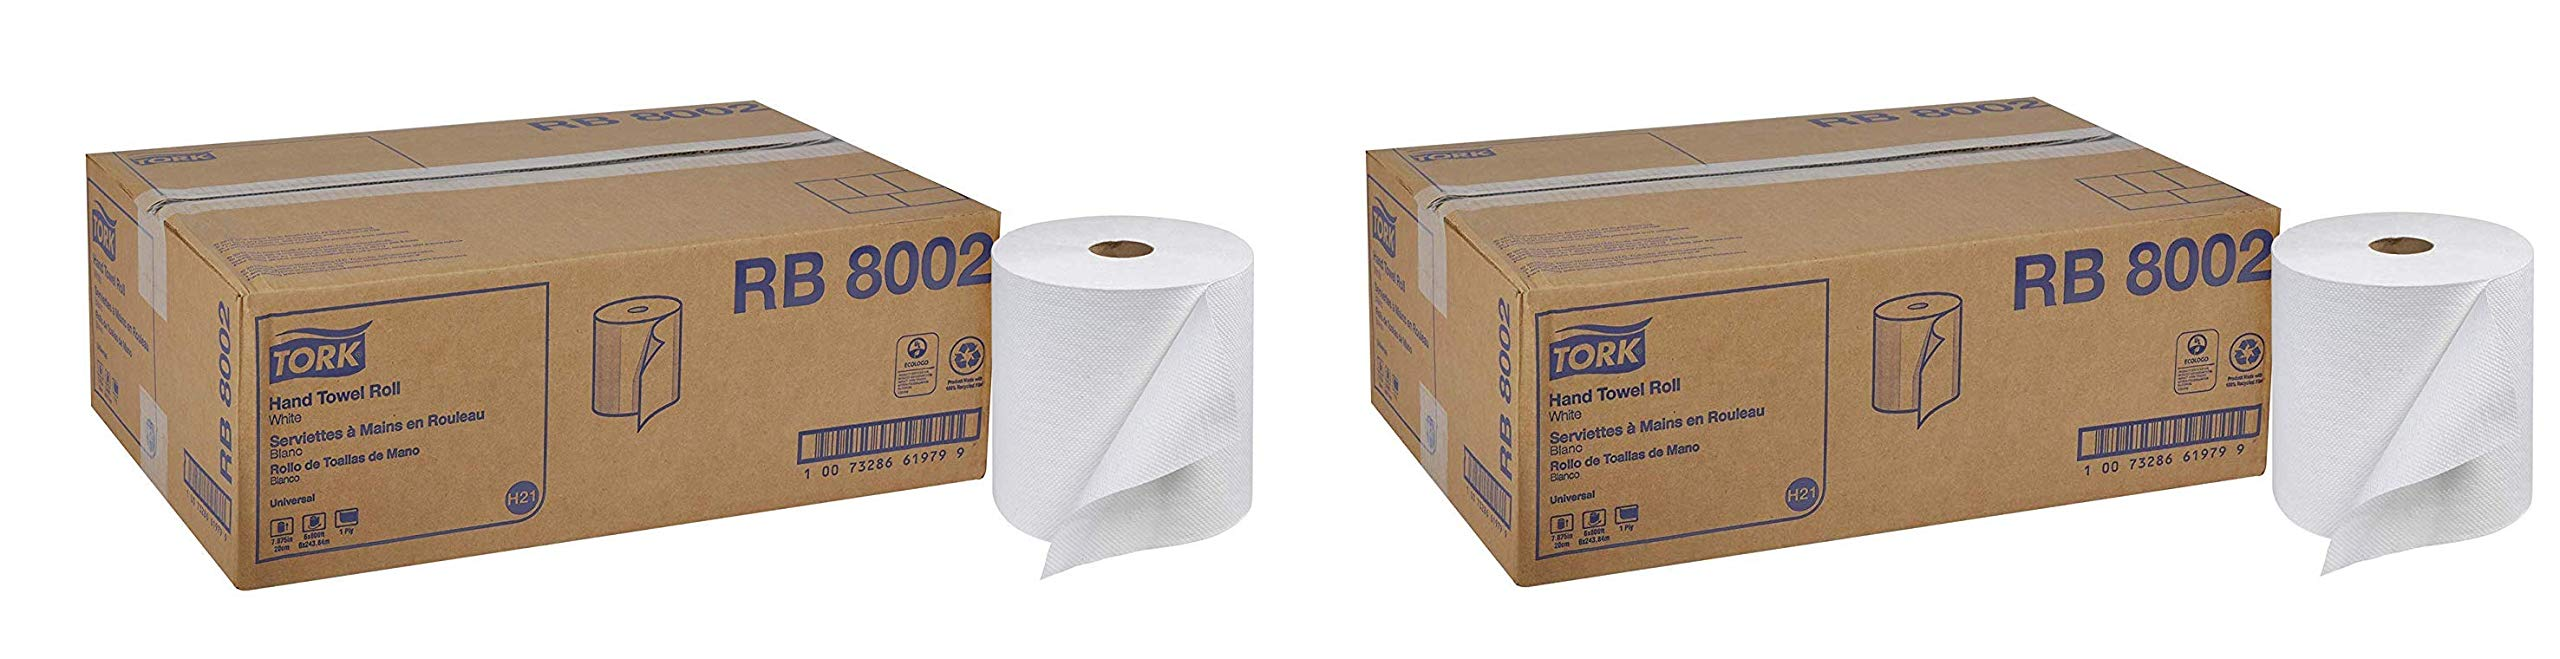 Tork Universal RB8002 Hardwound Paper Roll Towel, 1-Ply, 7.87'' Width x 800' Length, White (Case of 6 Rolls, 800 per Roll, 4,800 Feet) (Тwo Рack) by Tork (Image #1)